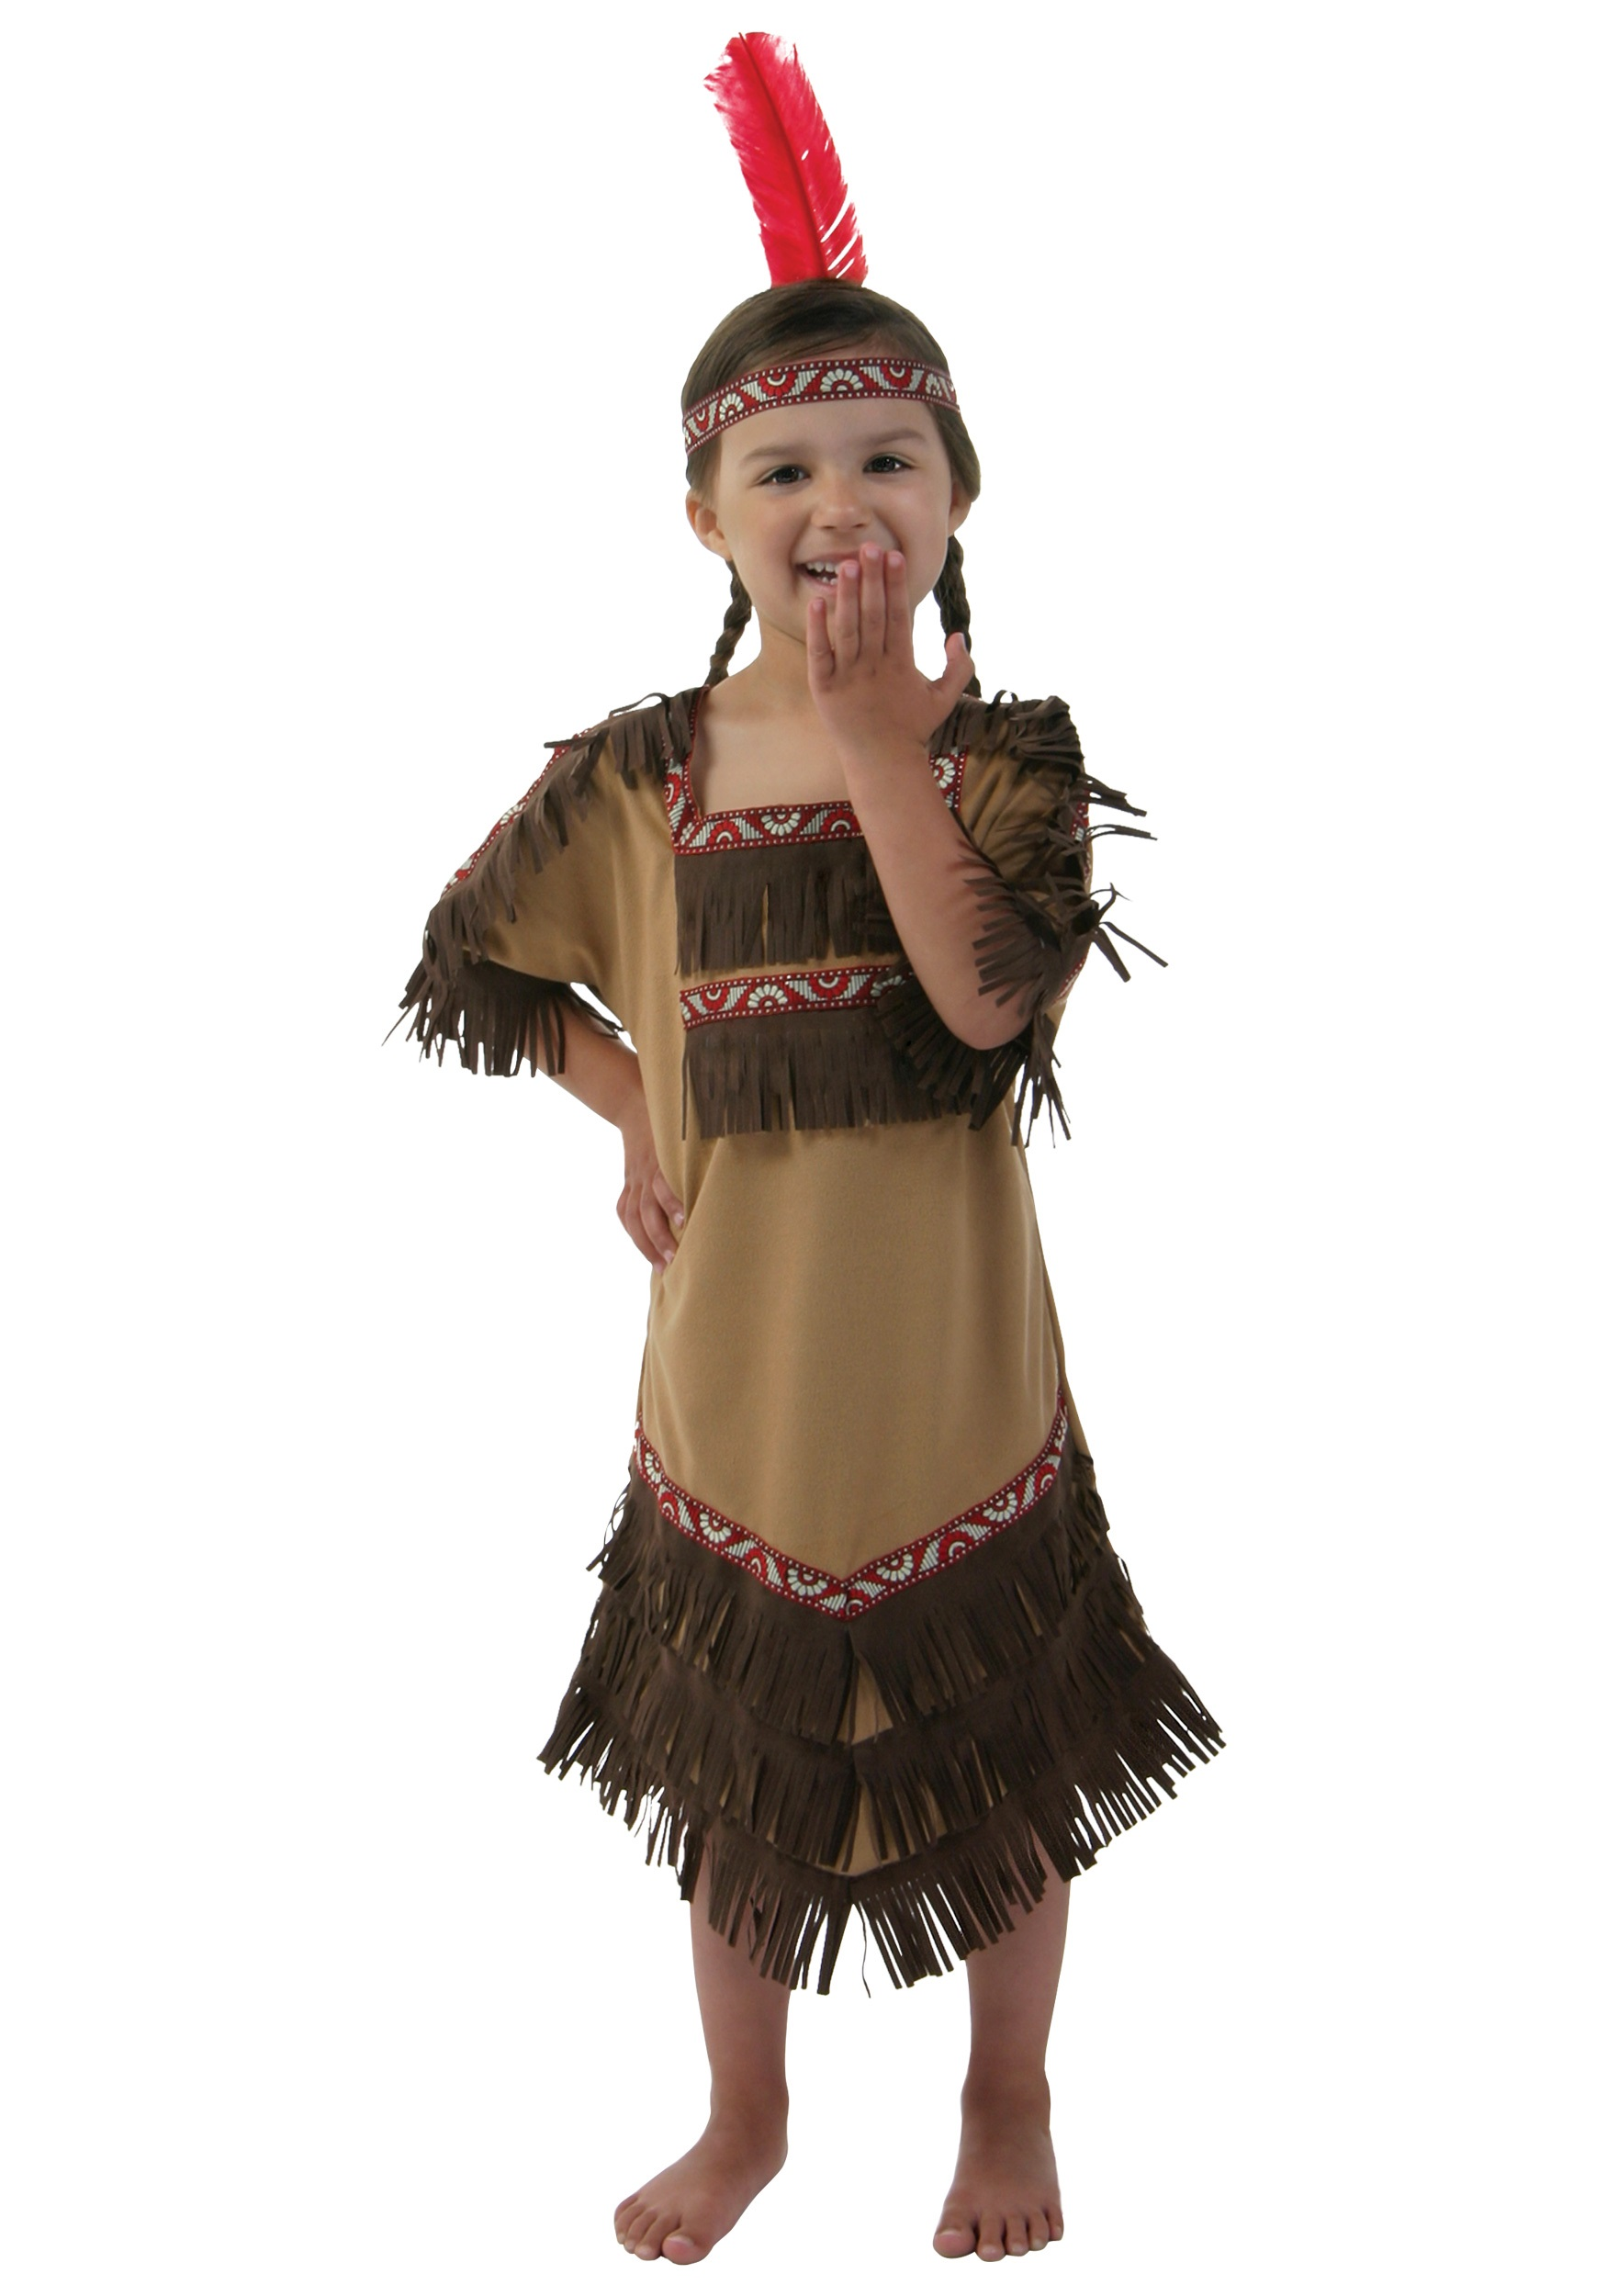 sc 1 st  Walmart & Kids Indian Girl Costume - Walmart.com